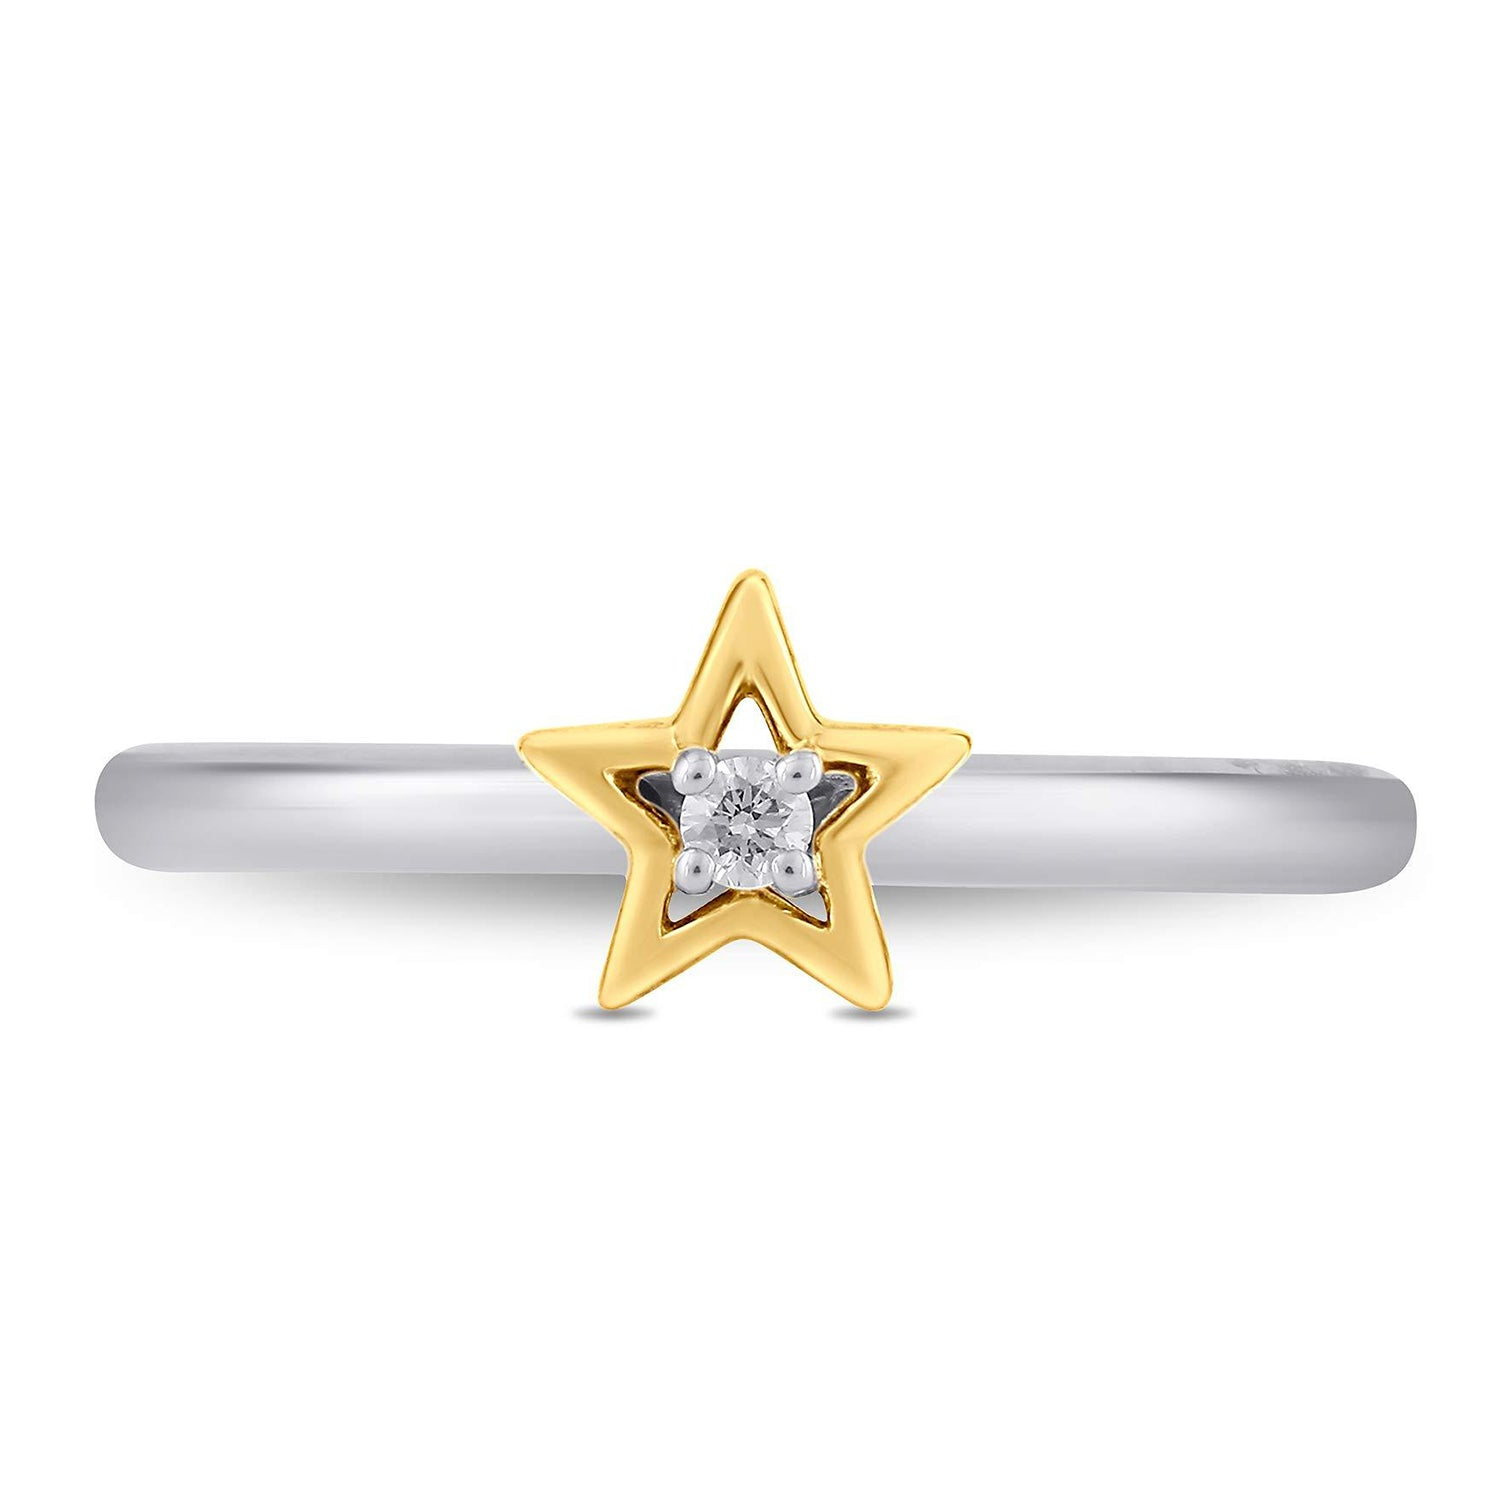 enchanted_disney-tinker-bell_fashion_ring-white_and_yellow_gold_2